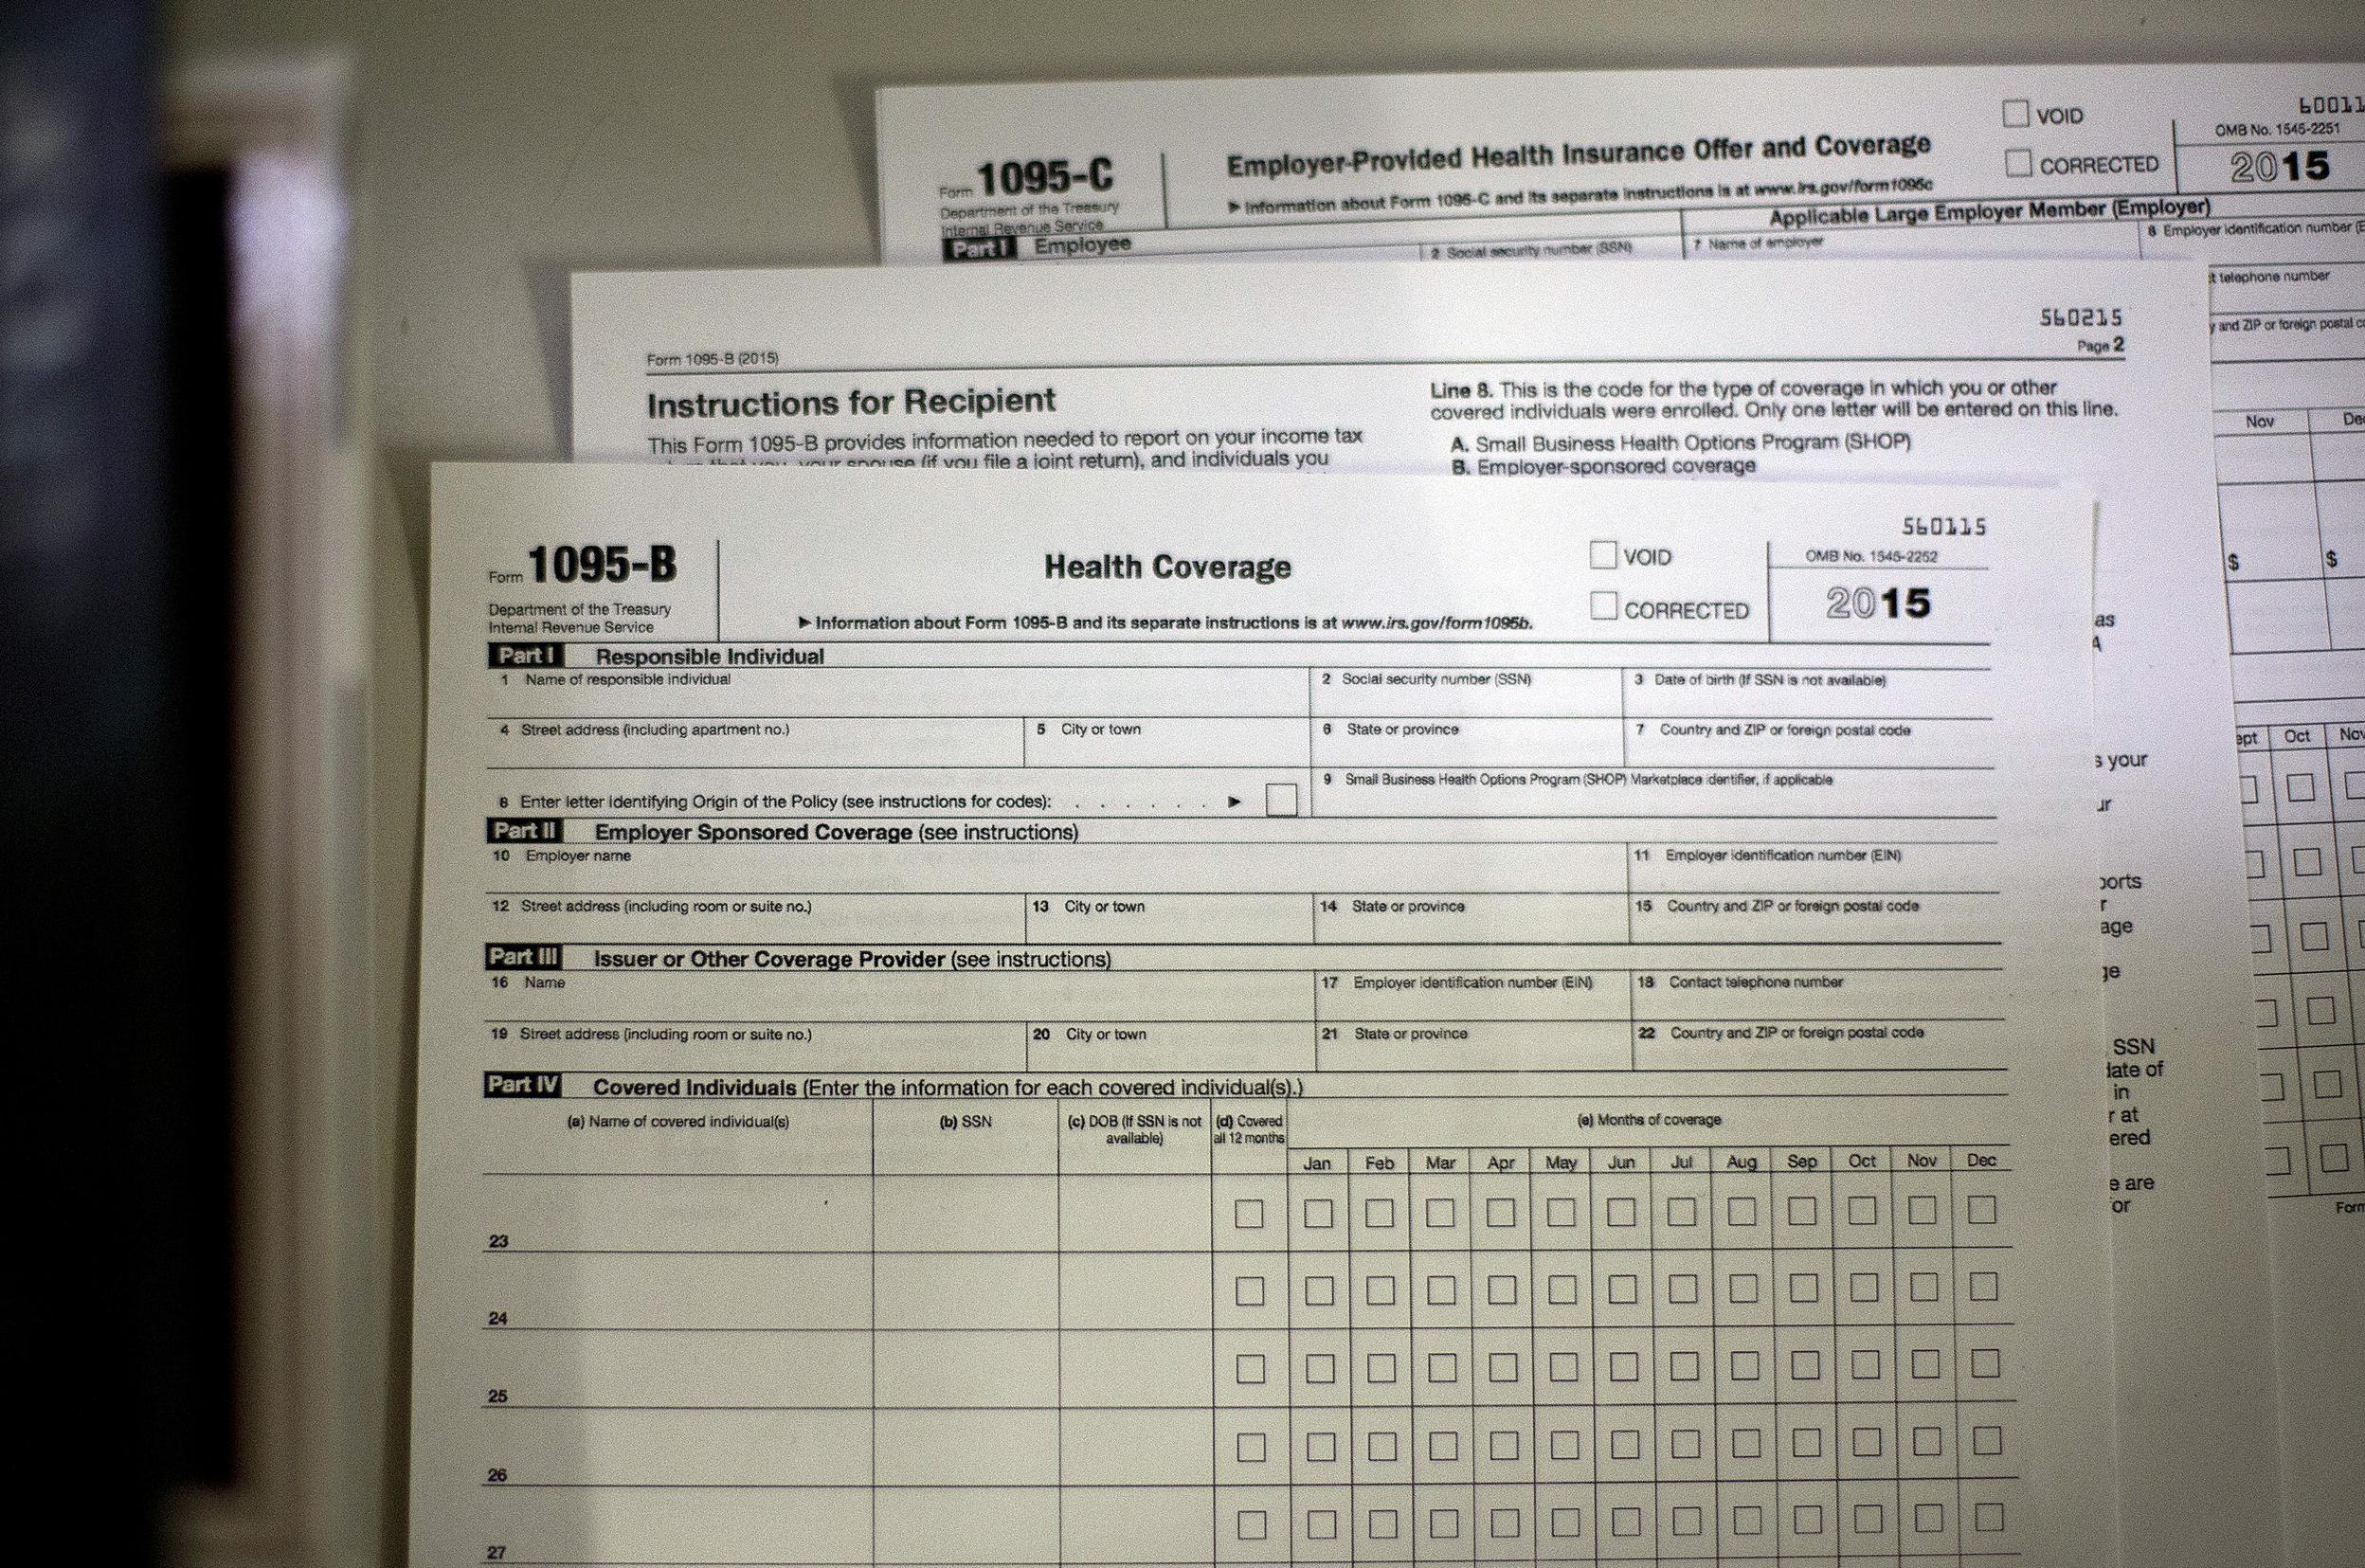 Tax time: Still need more time? How to file a tax extension | The ...